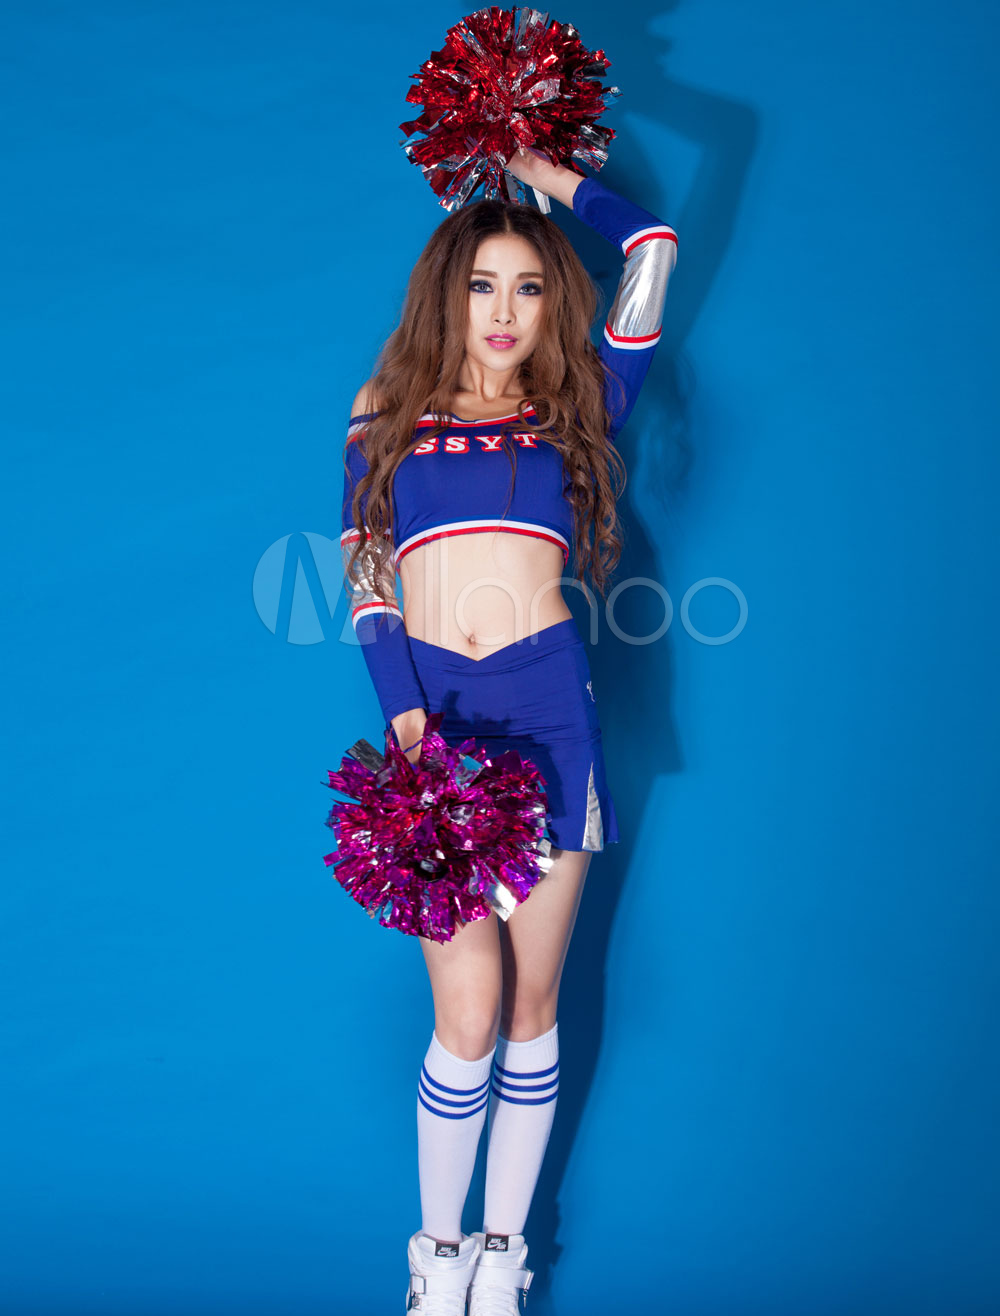 21e654ac2d3 Sexy Basketball Girl Costume Royal Blue Crop Top With Skirt Hot Cheerleader  Costume